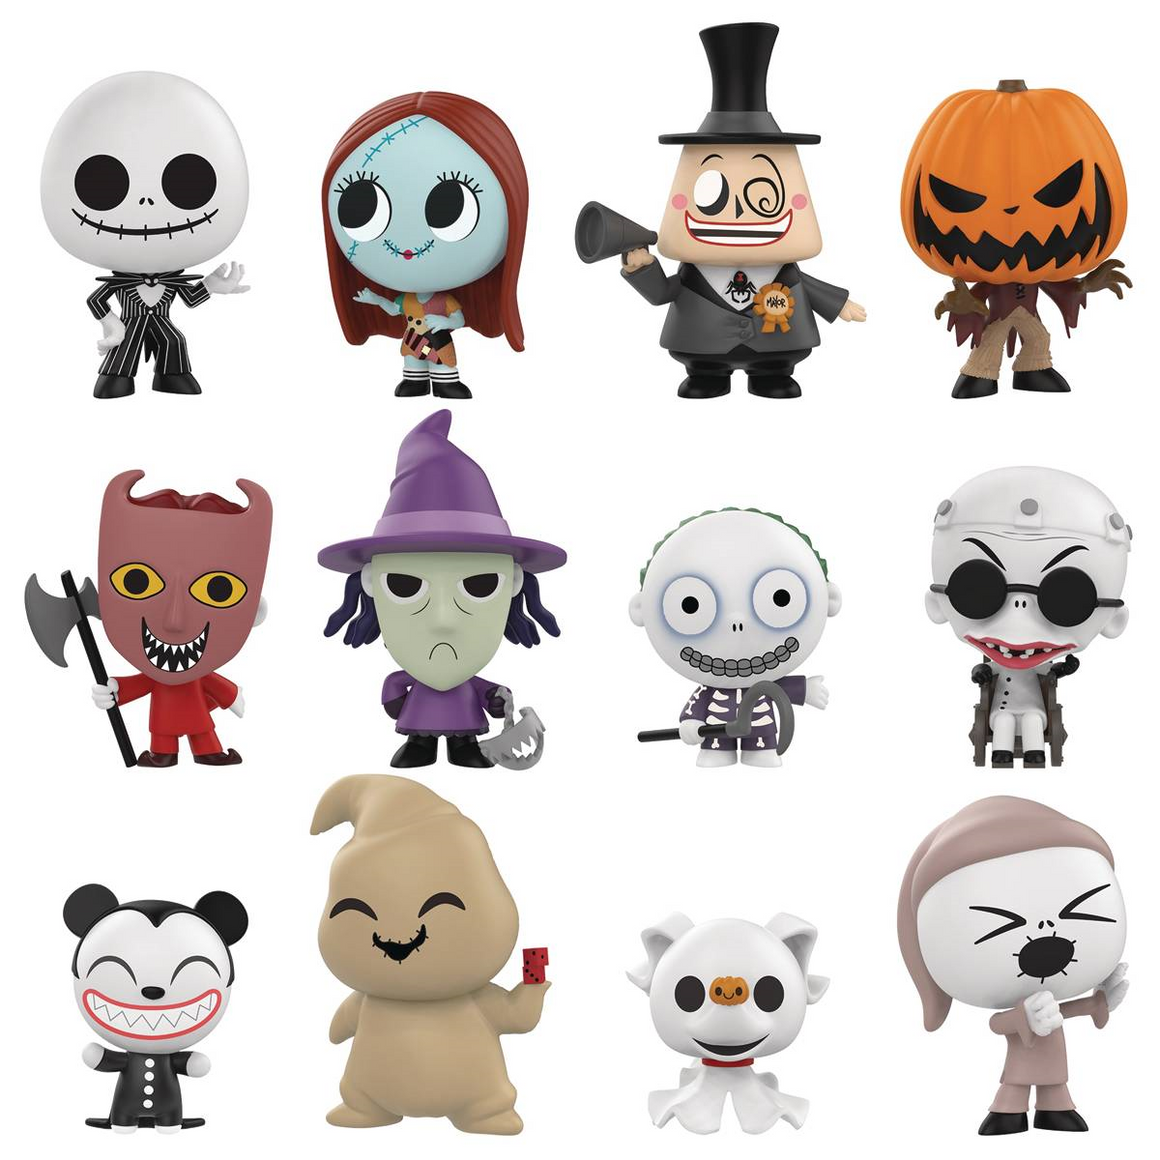 The Nightmare Before Christmas Disney Mystery Minis by Funko